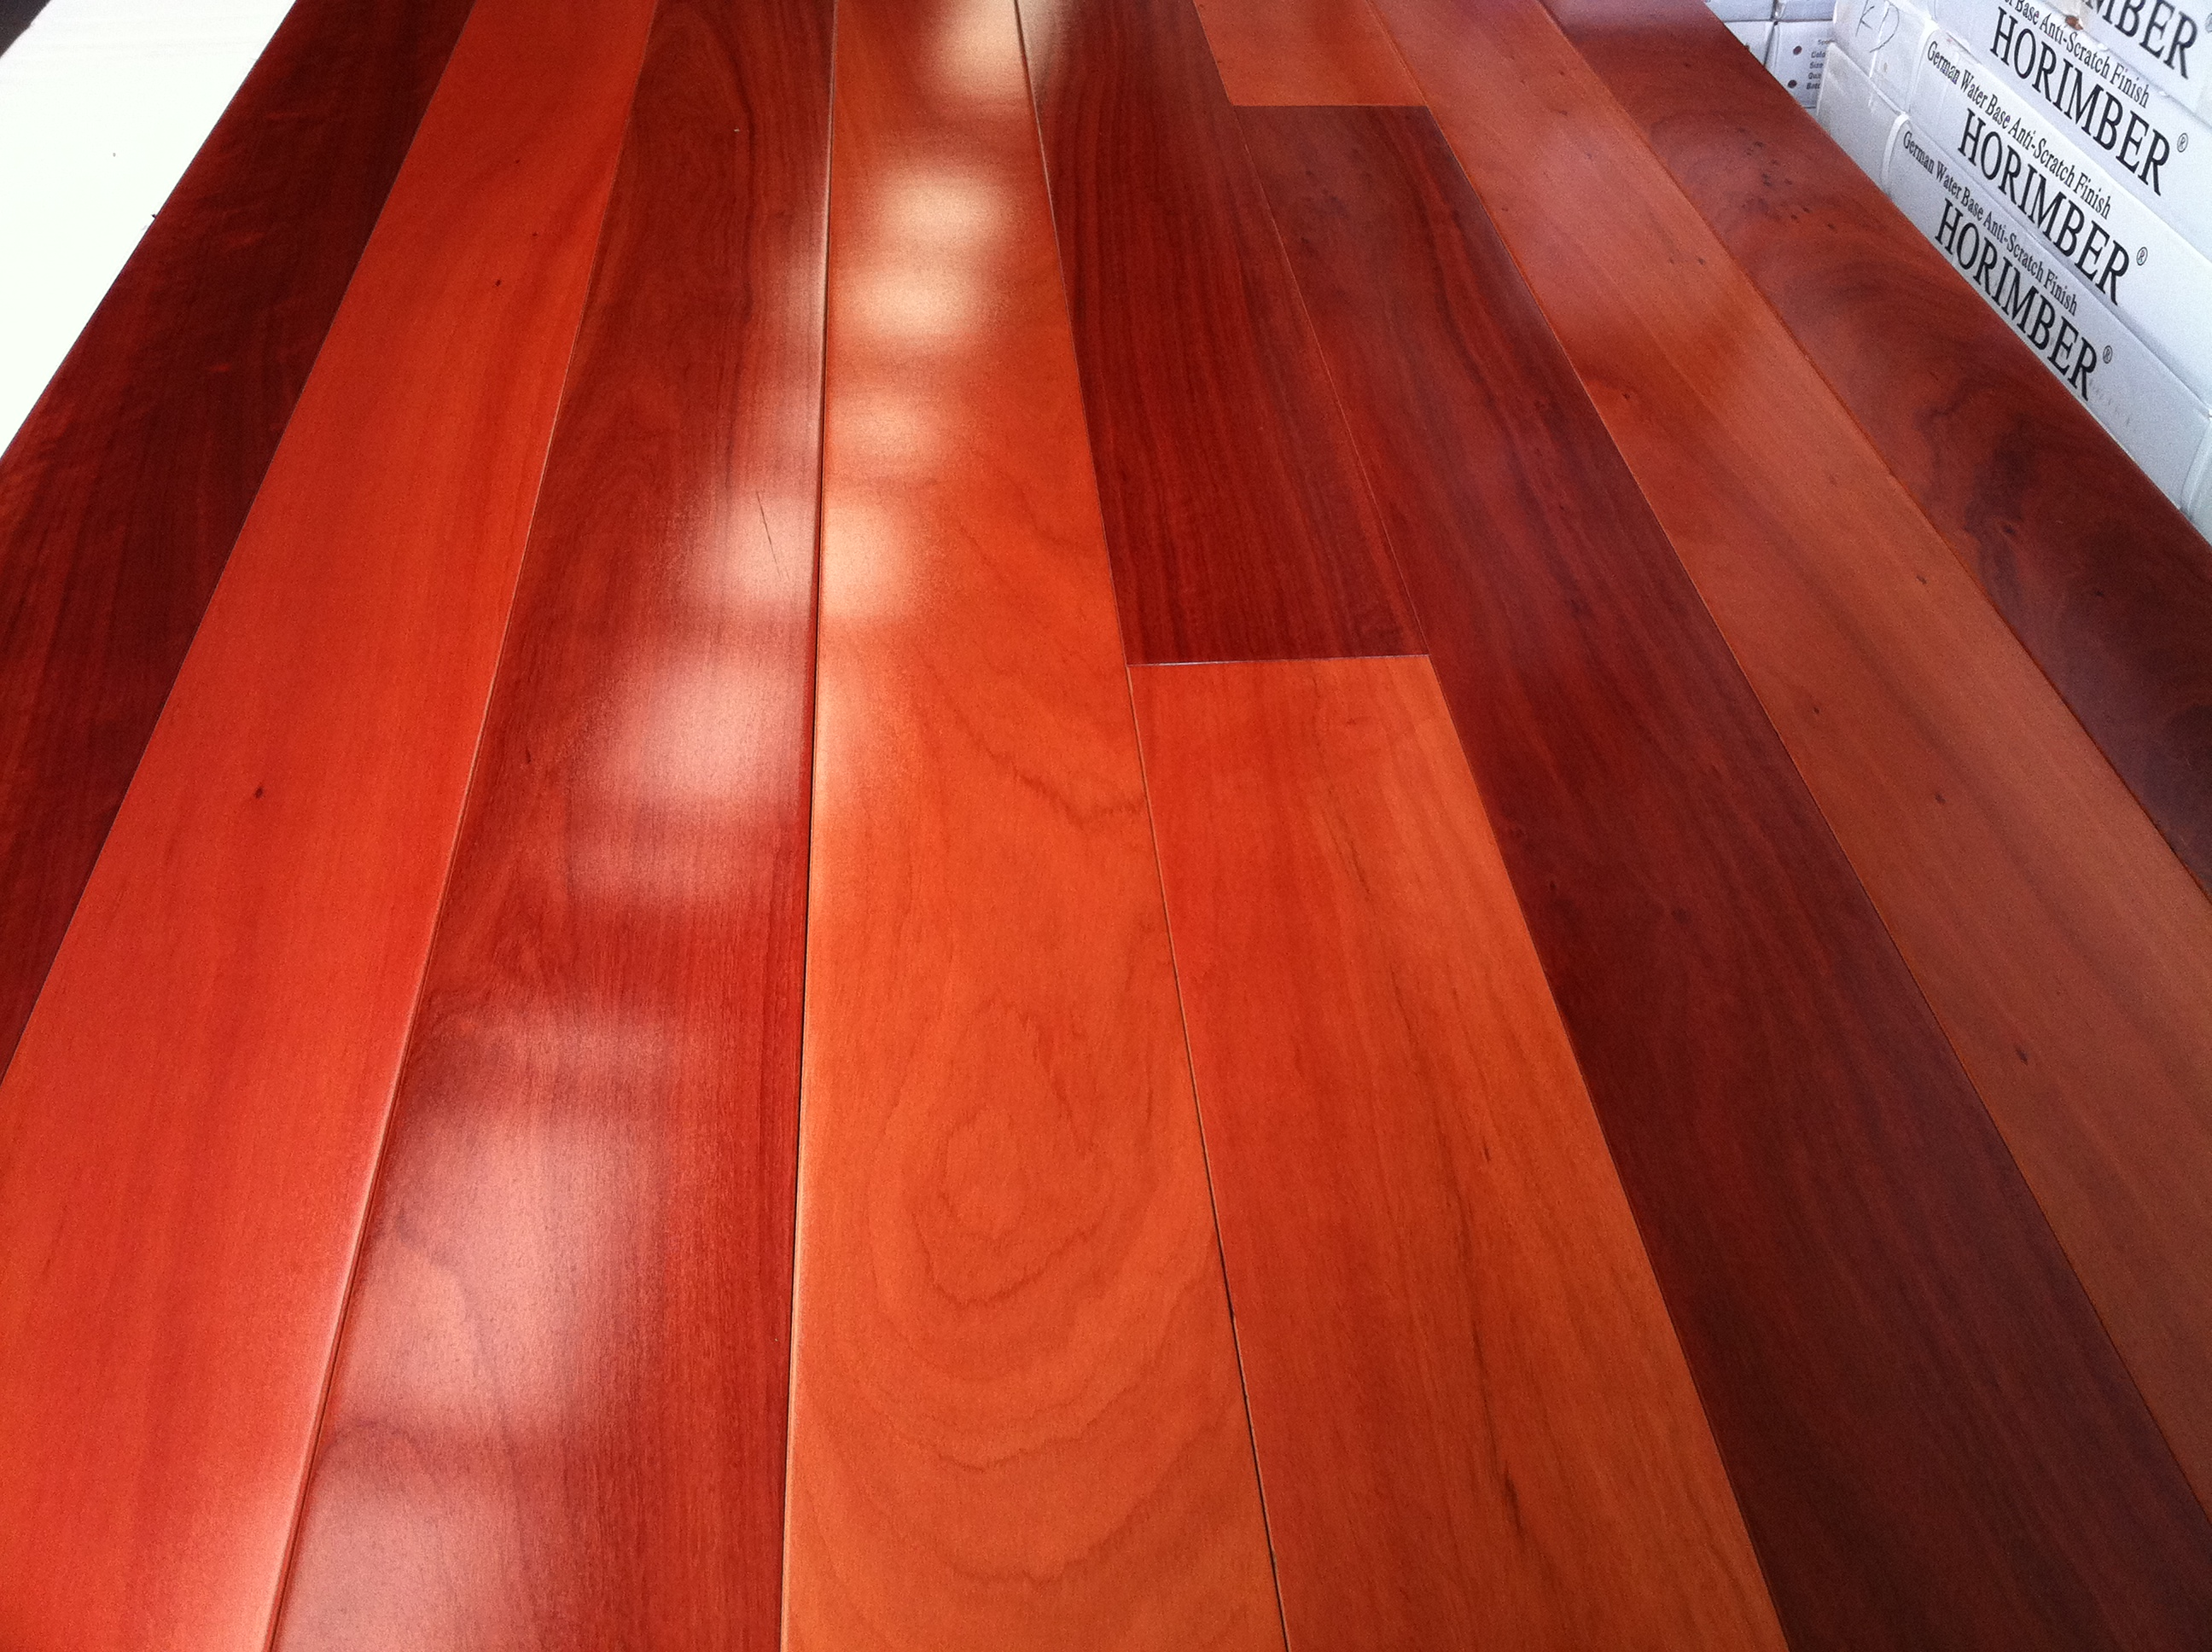 River Red Gum Country Timber Flooring Tel 02 9737 8801